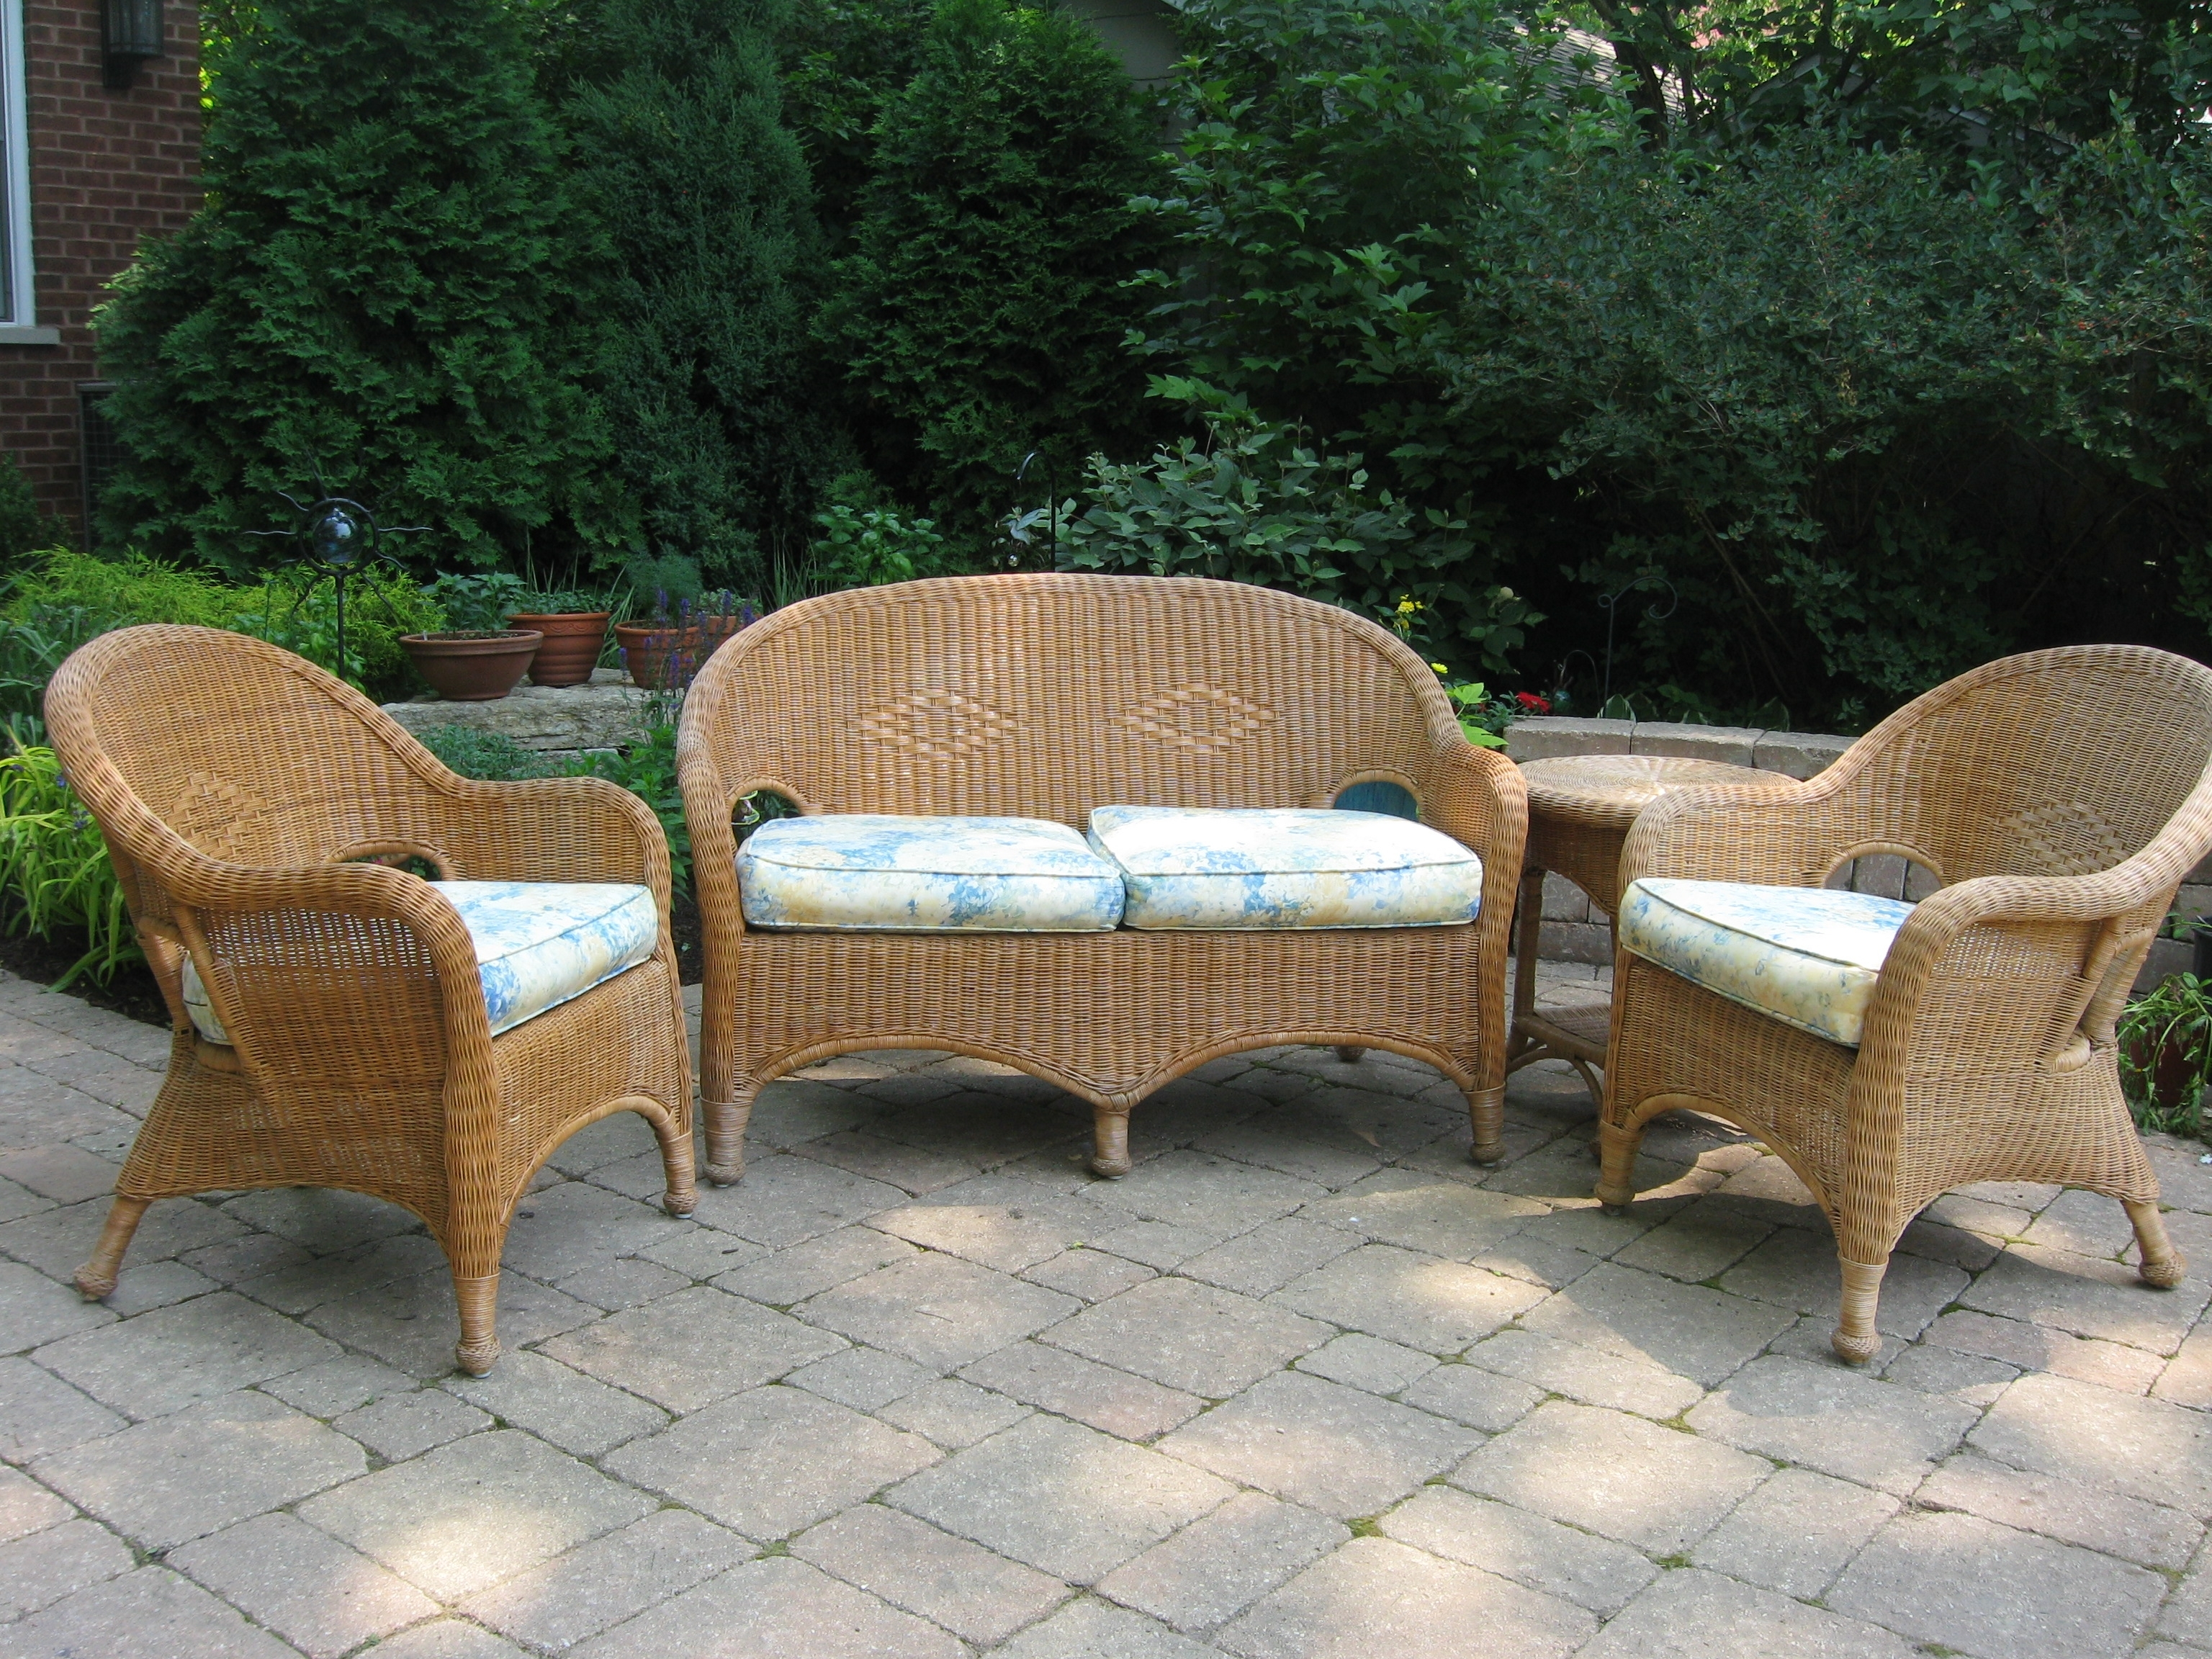 Furniture Interesting Wicker Chair Cushions For Inspiring Outdoor With Regard To Outdoor Wicker Seat Cushions Very Elegant Outdoor Wicker Seat Cushions